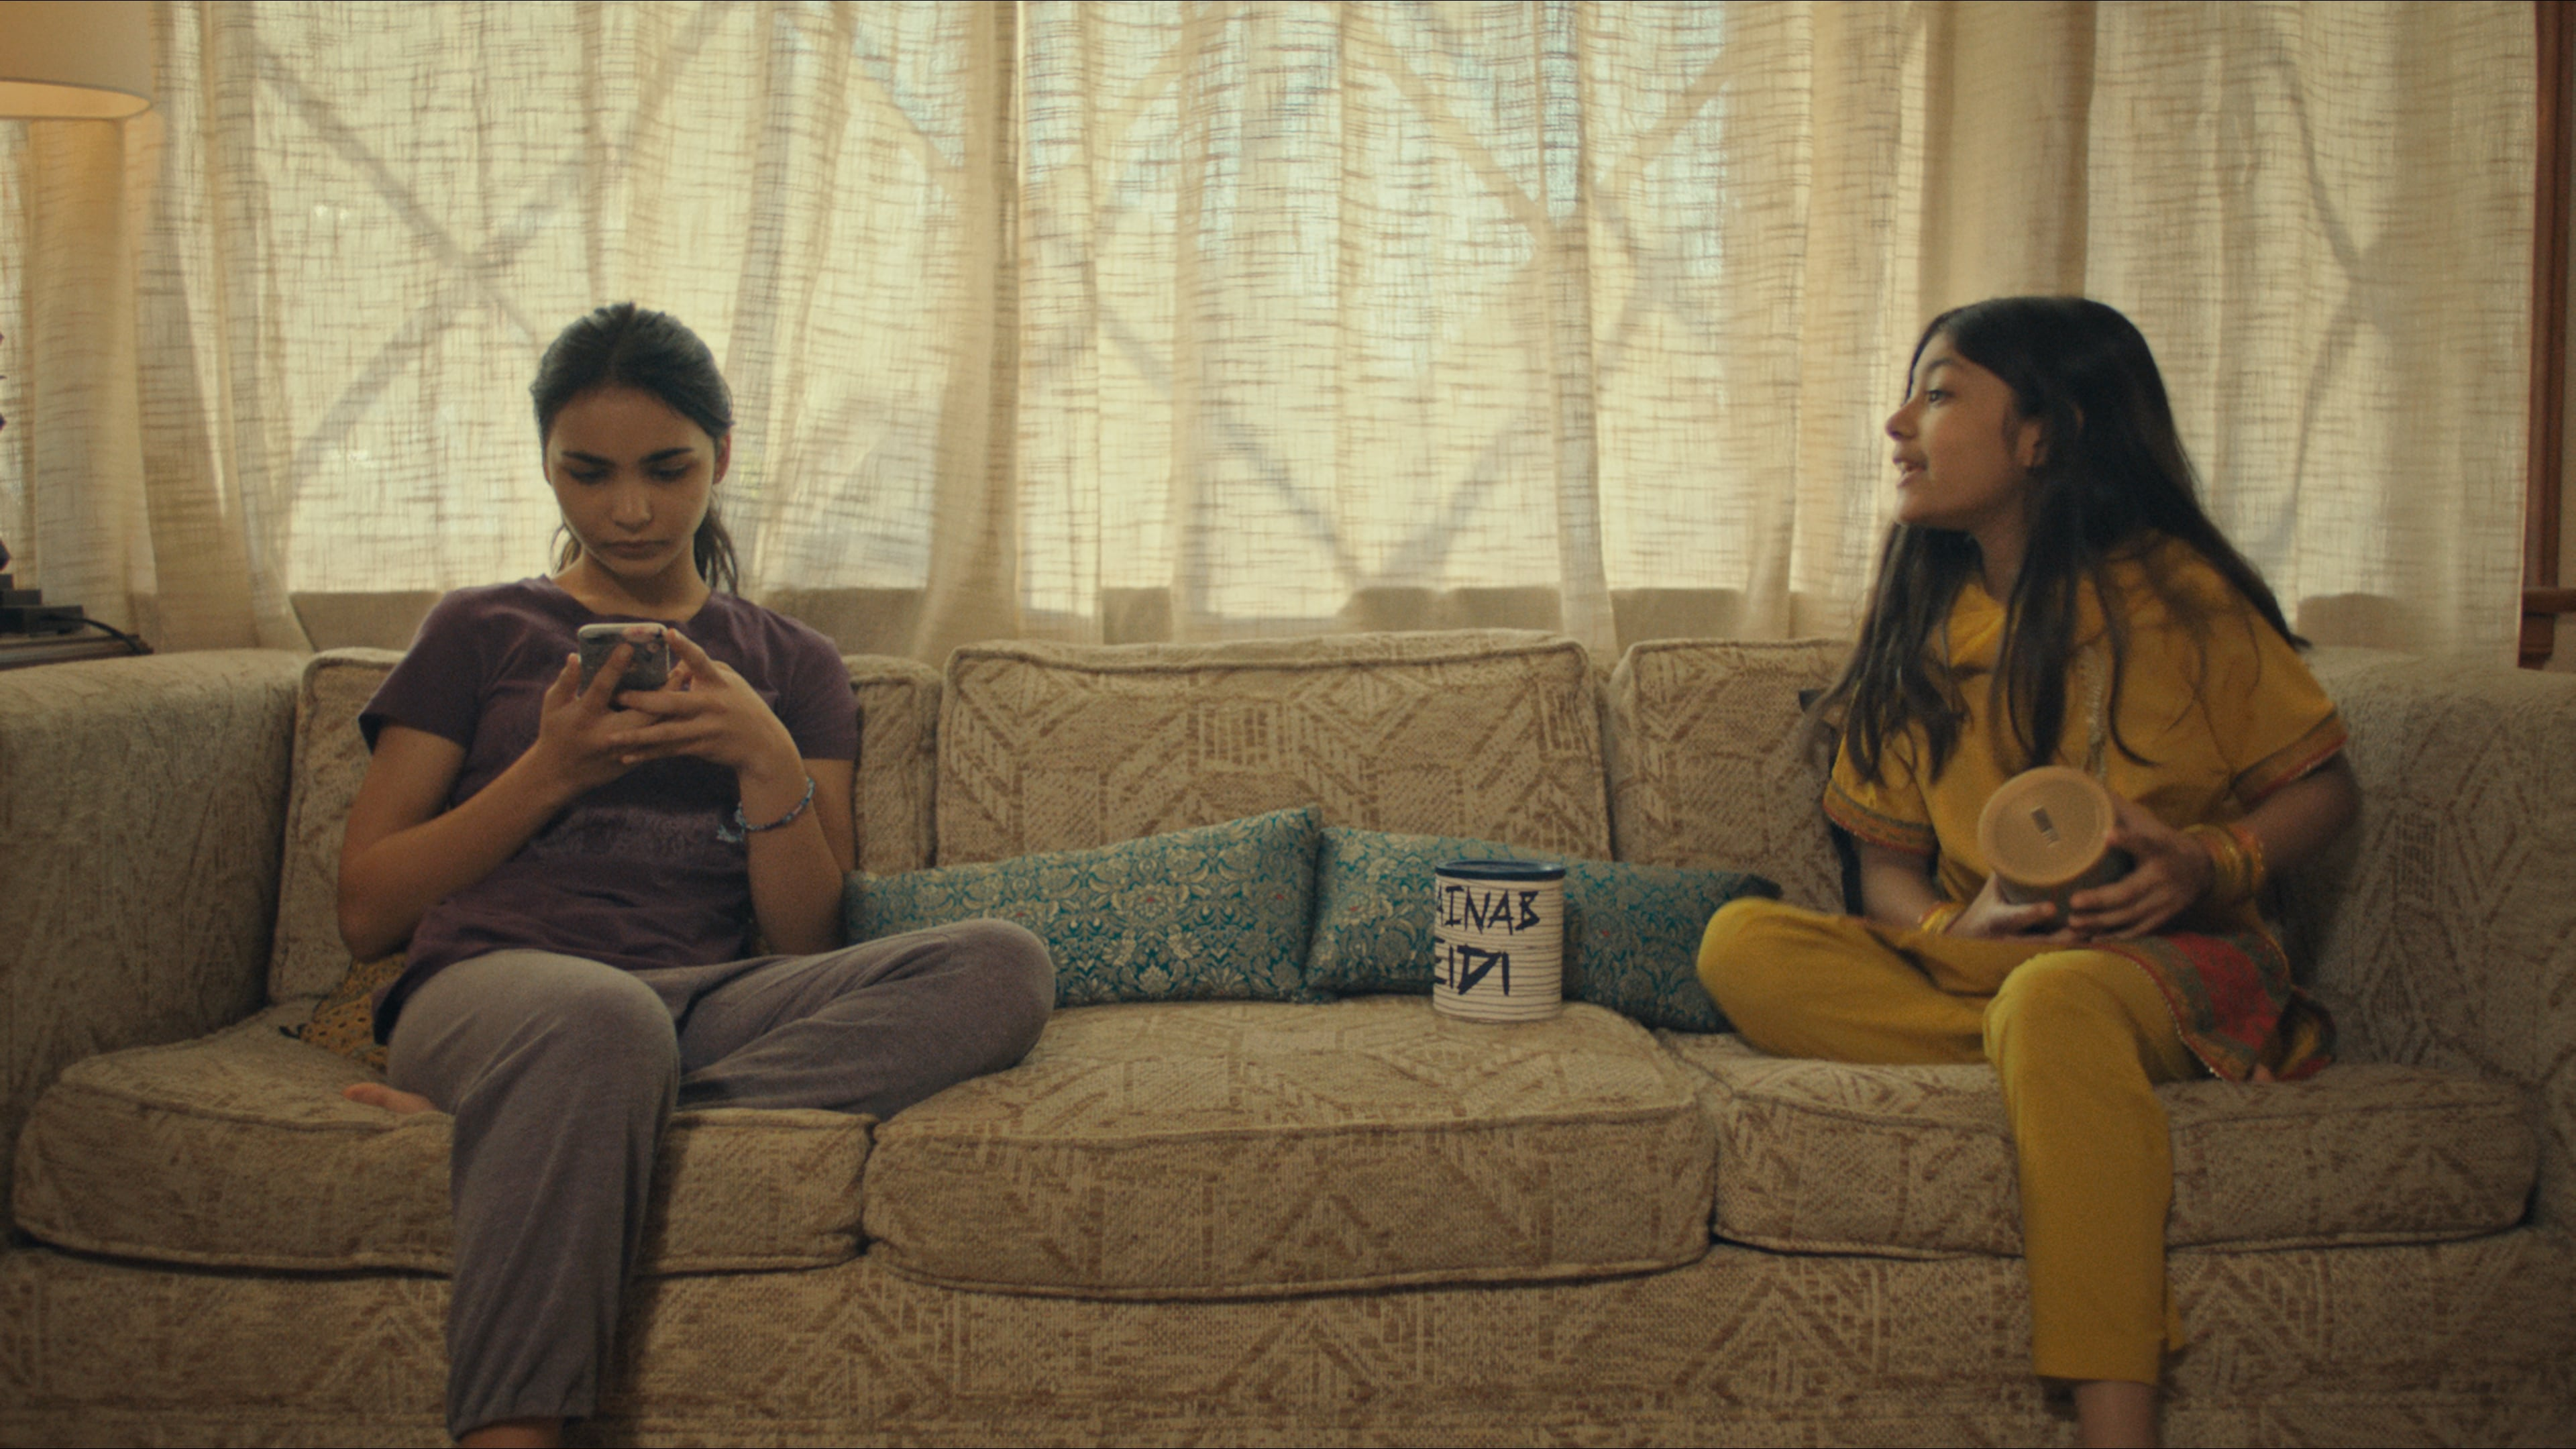 """(L-R): Jenna Qureshi as Zainab and Shanessa Khawaja as Ameena in Disney's """"LAUNCHPAD"""" Season One short, """"AMERICAN EID,"""" Written and Directed byAqsa Altaf.Photo courtesy of Disney. © 2021 Disney Enterprises, Inc. All Rights Reserved."""